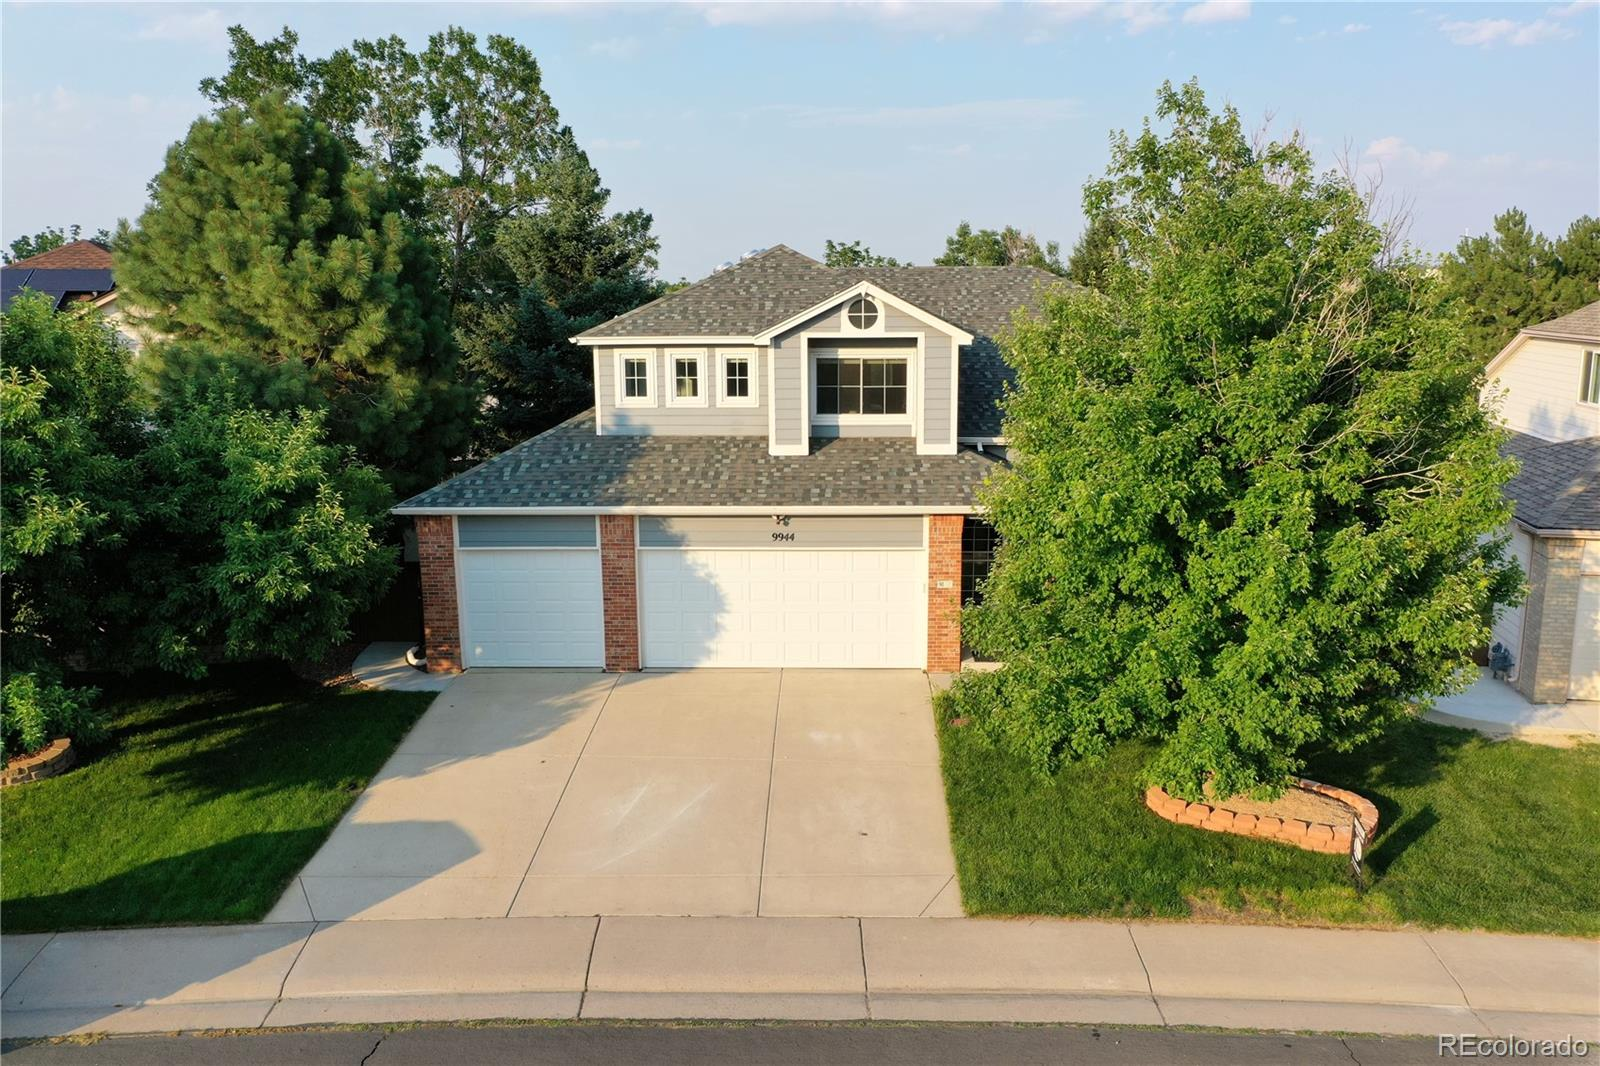 9944 Silver Maple Way, Highlands Ranch CO 80129